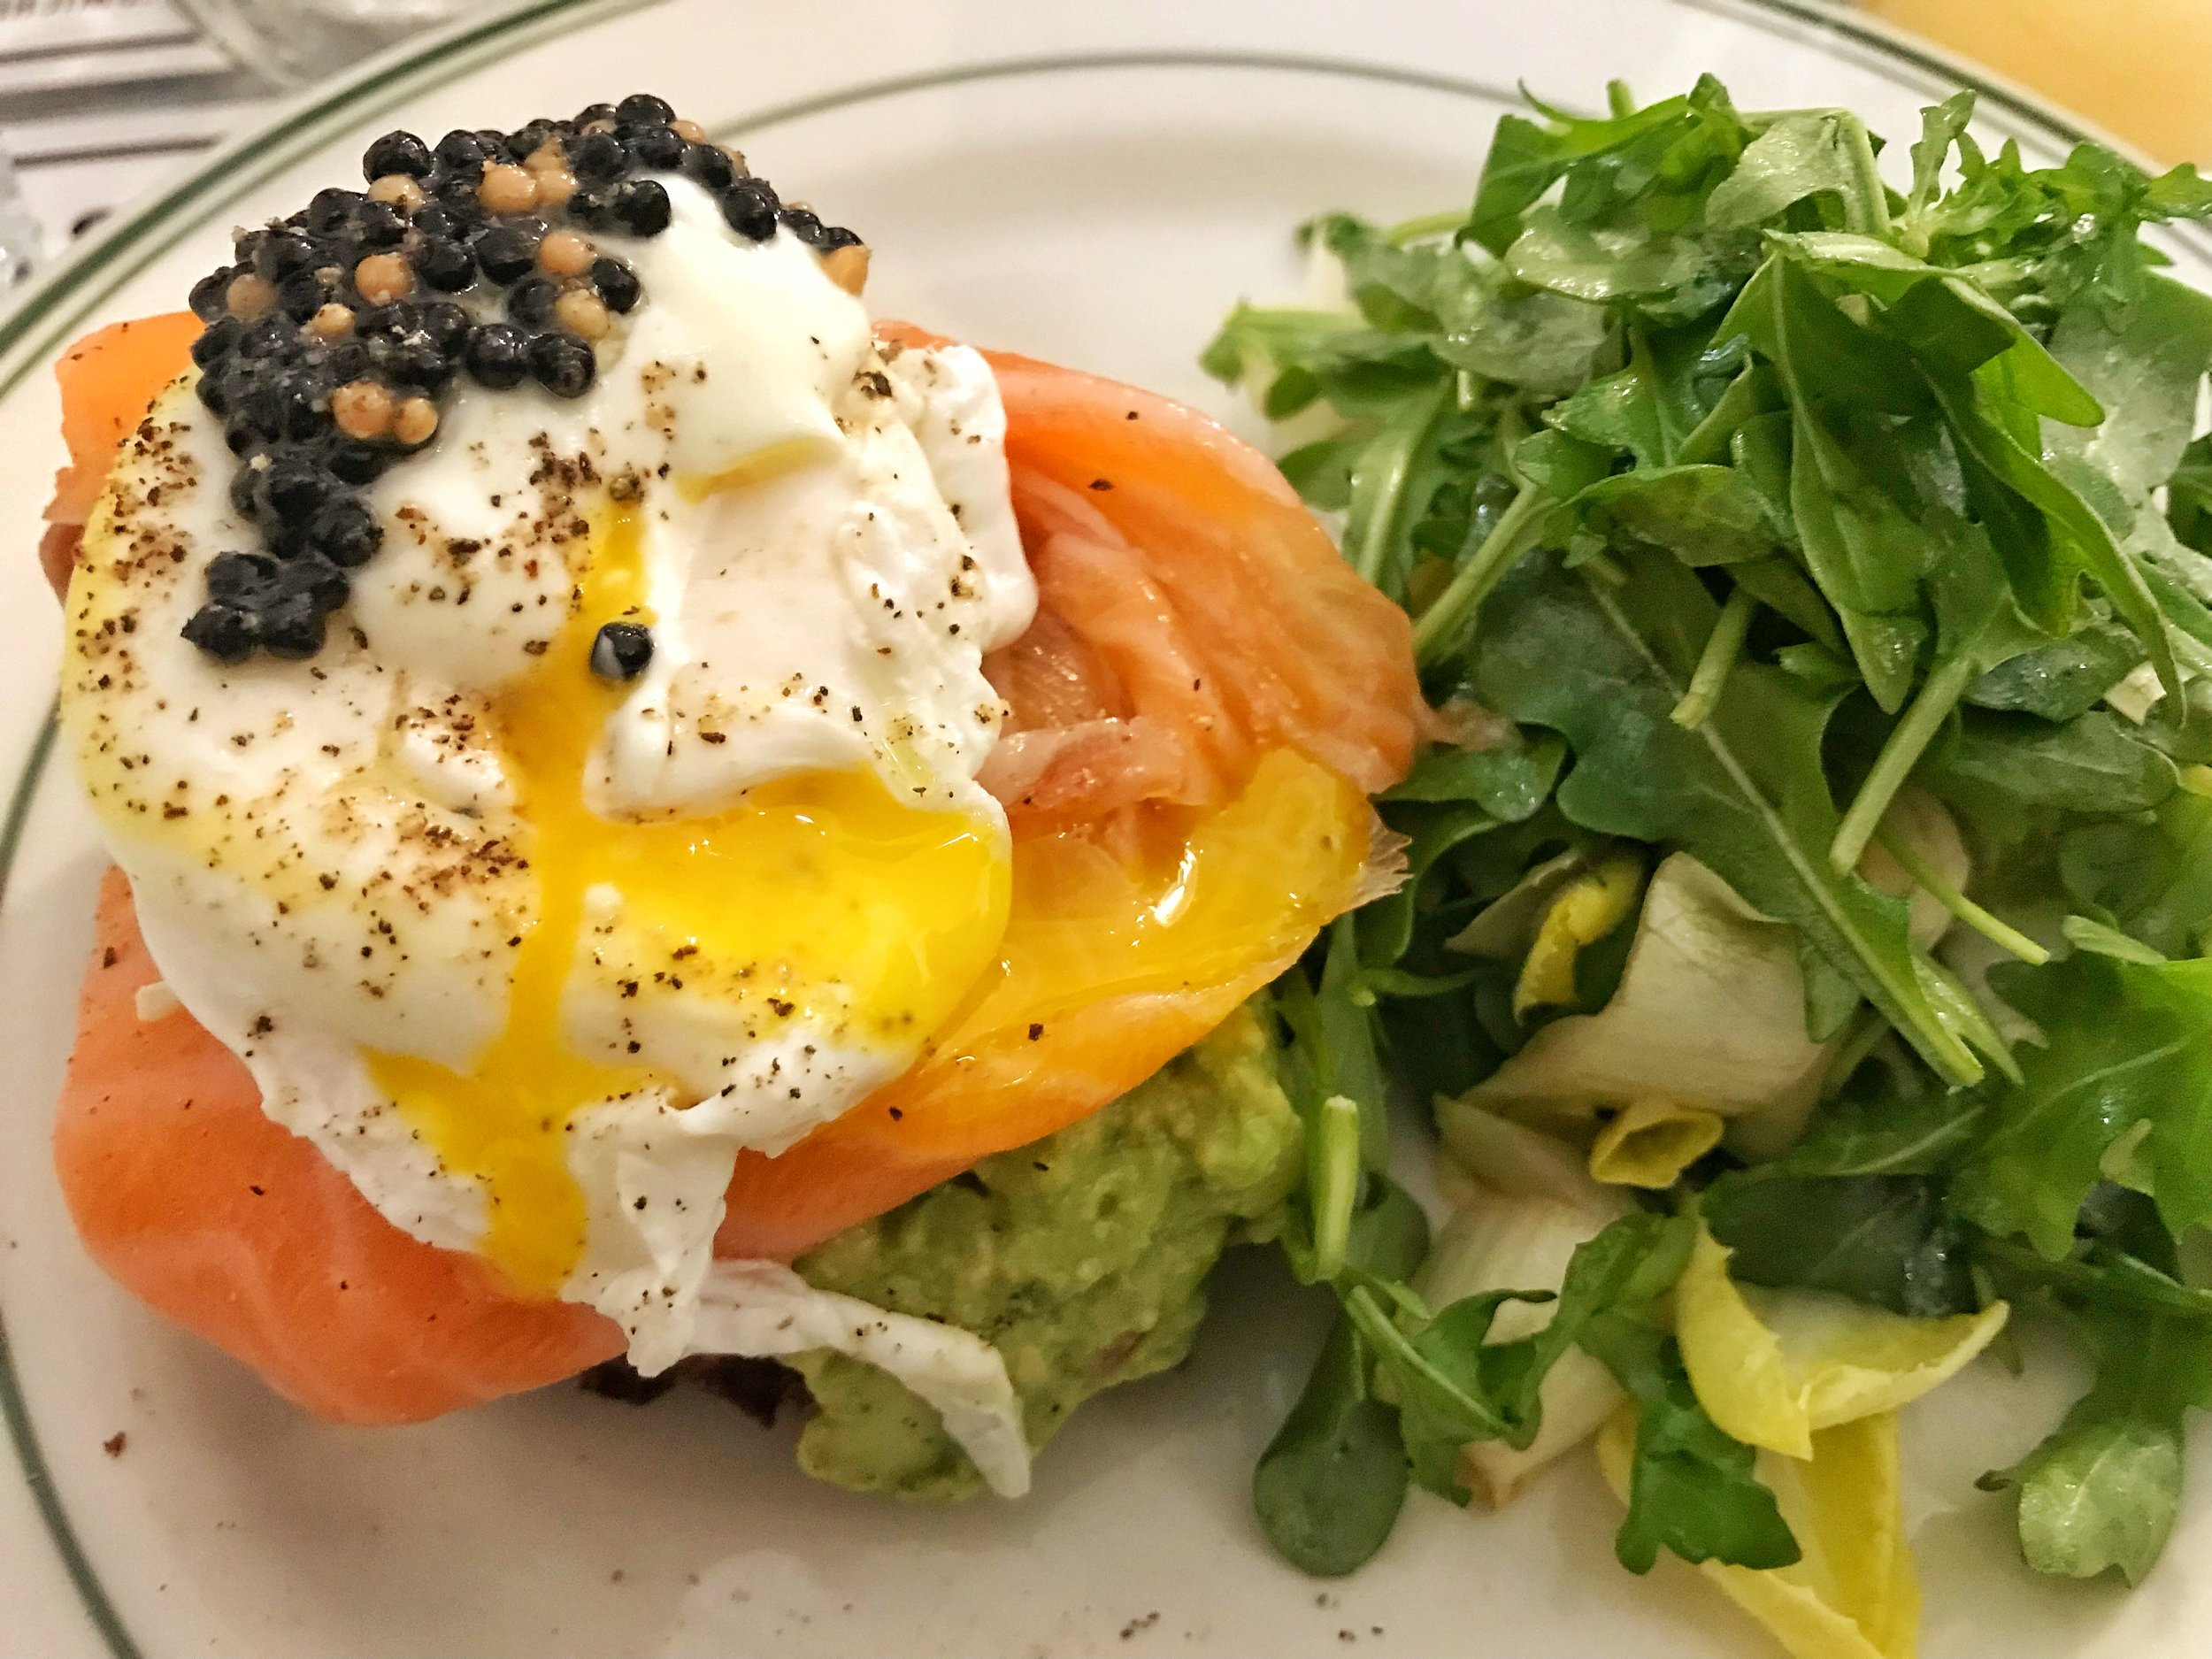 Gravalax: smoked salmon, poached egg, avocado, capers, dill